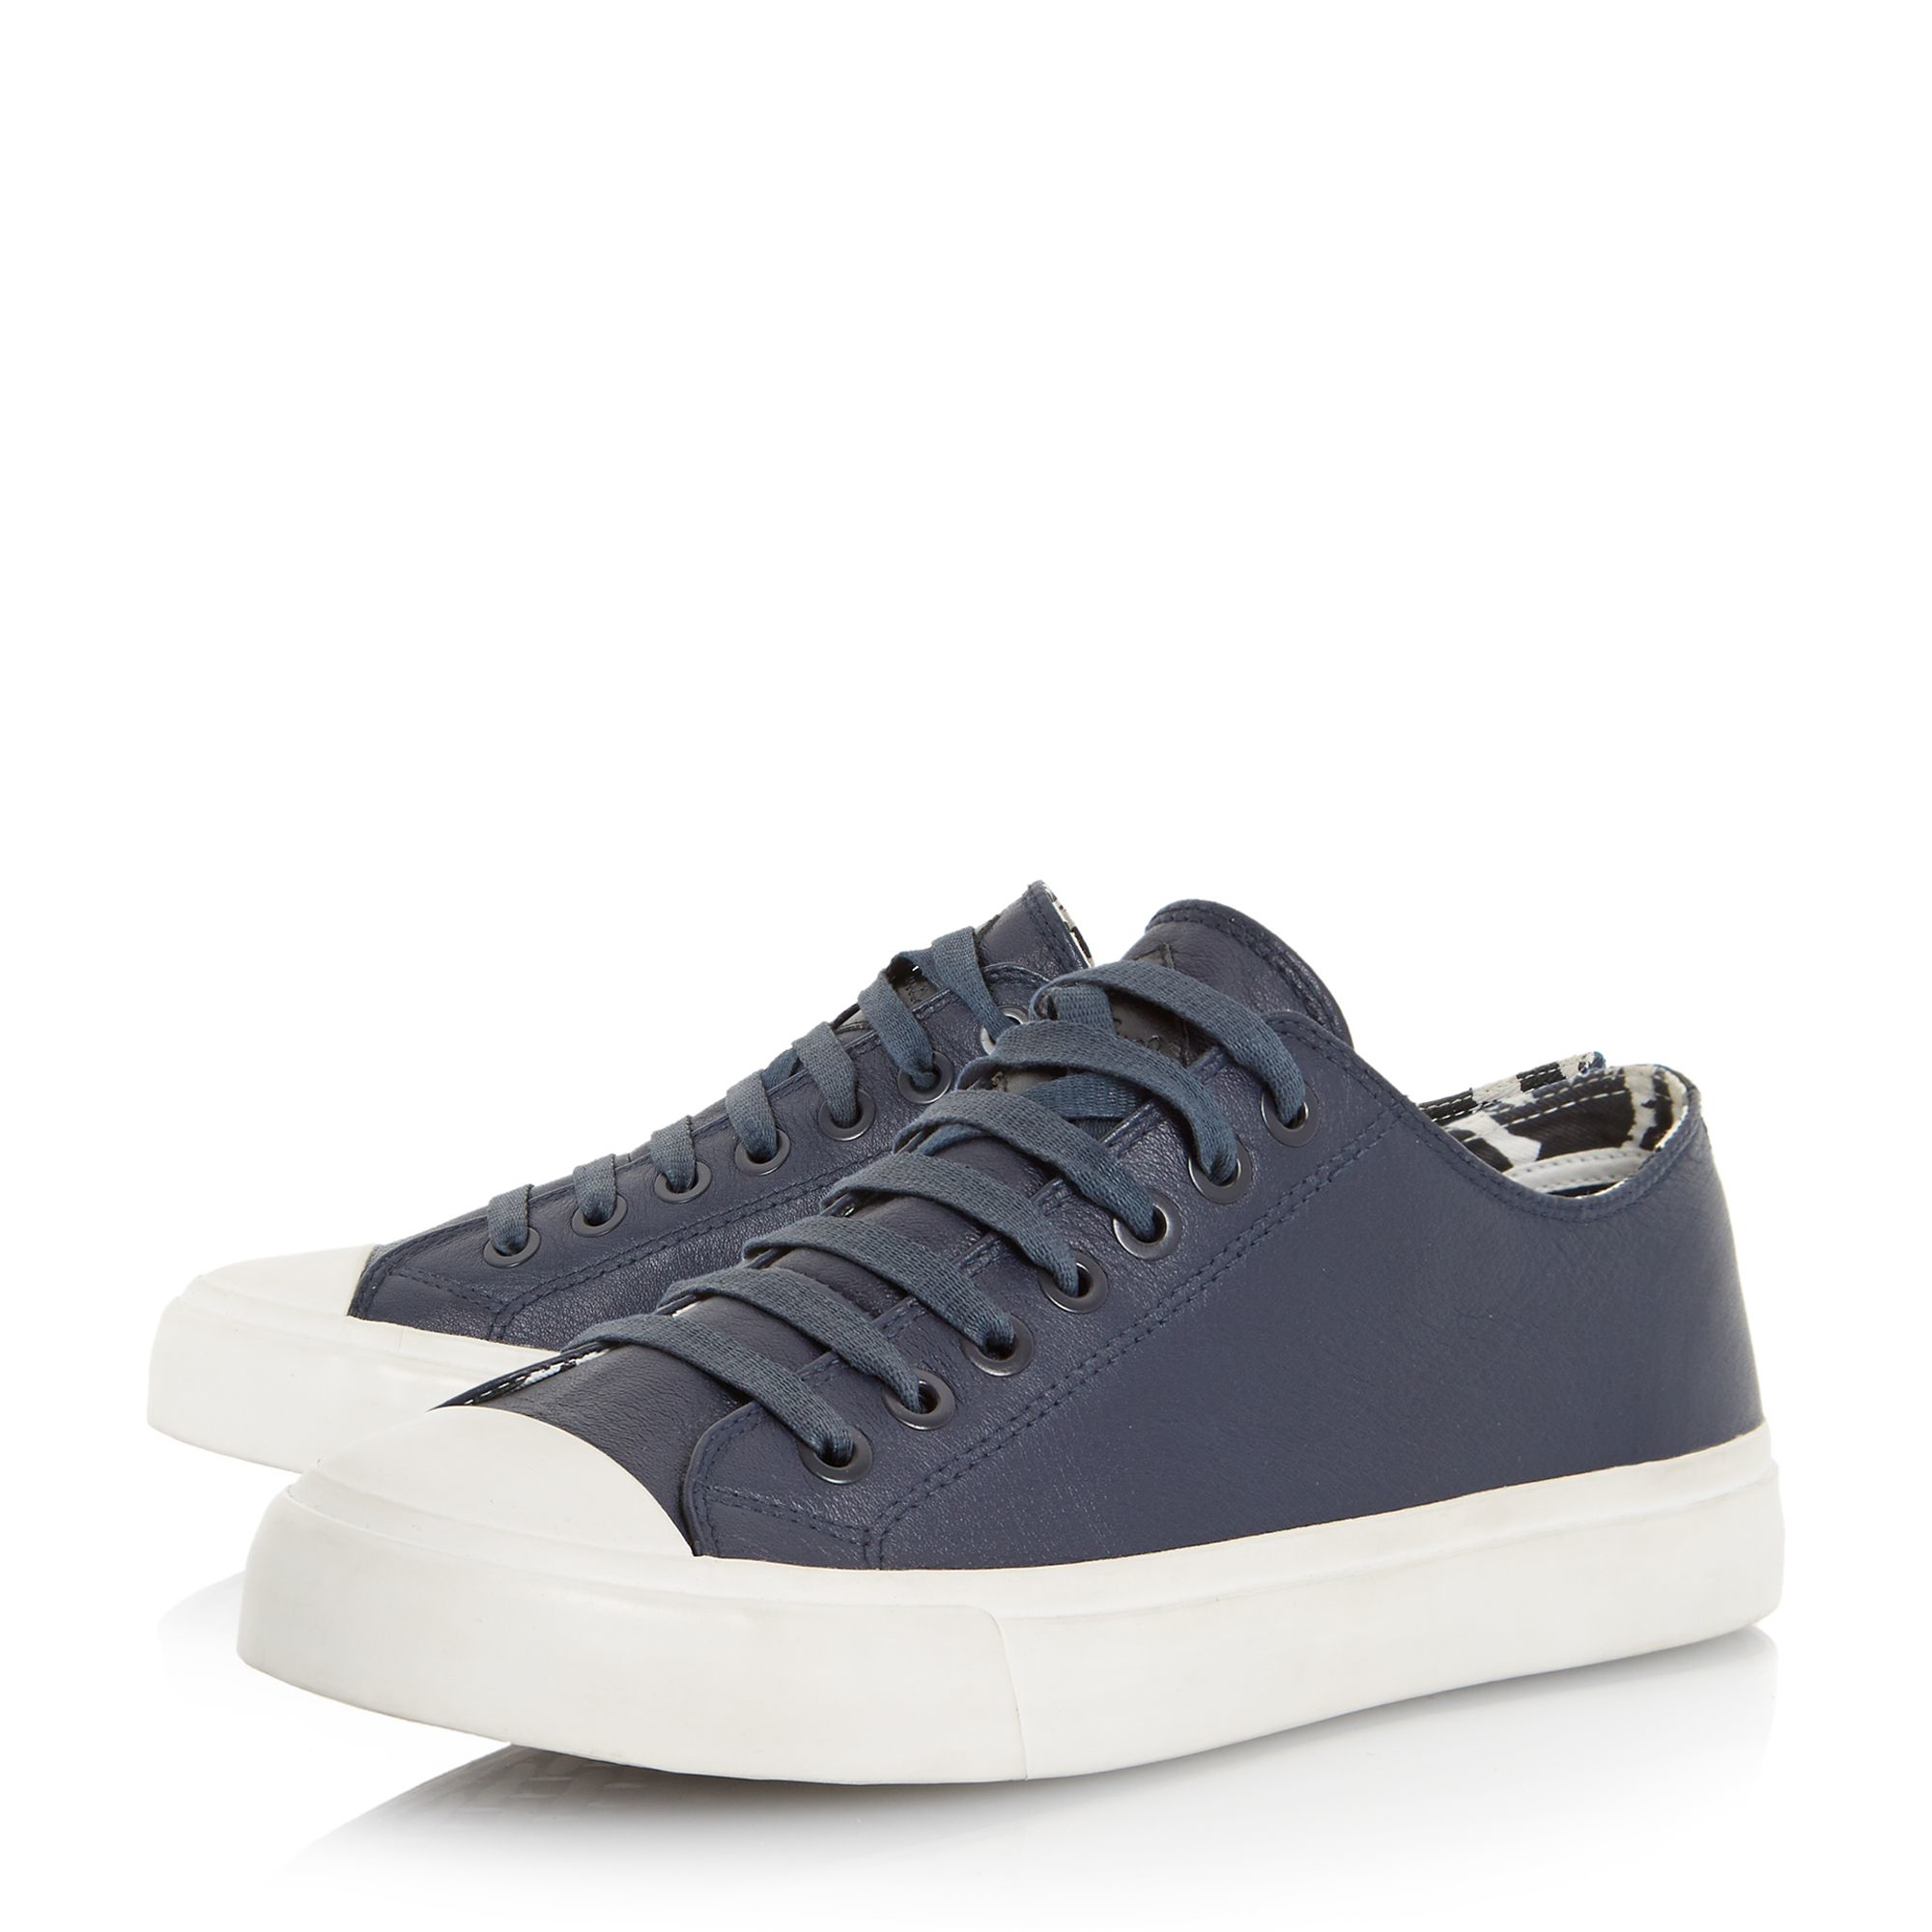 Paul Smith Indie Toecap Detail Leather Trainers in Navy (Blue) for Men